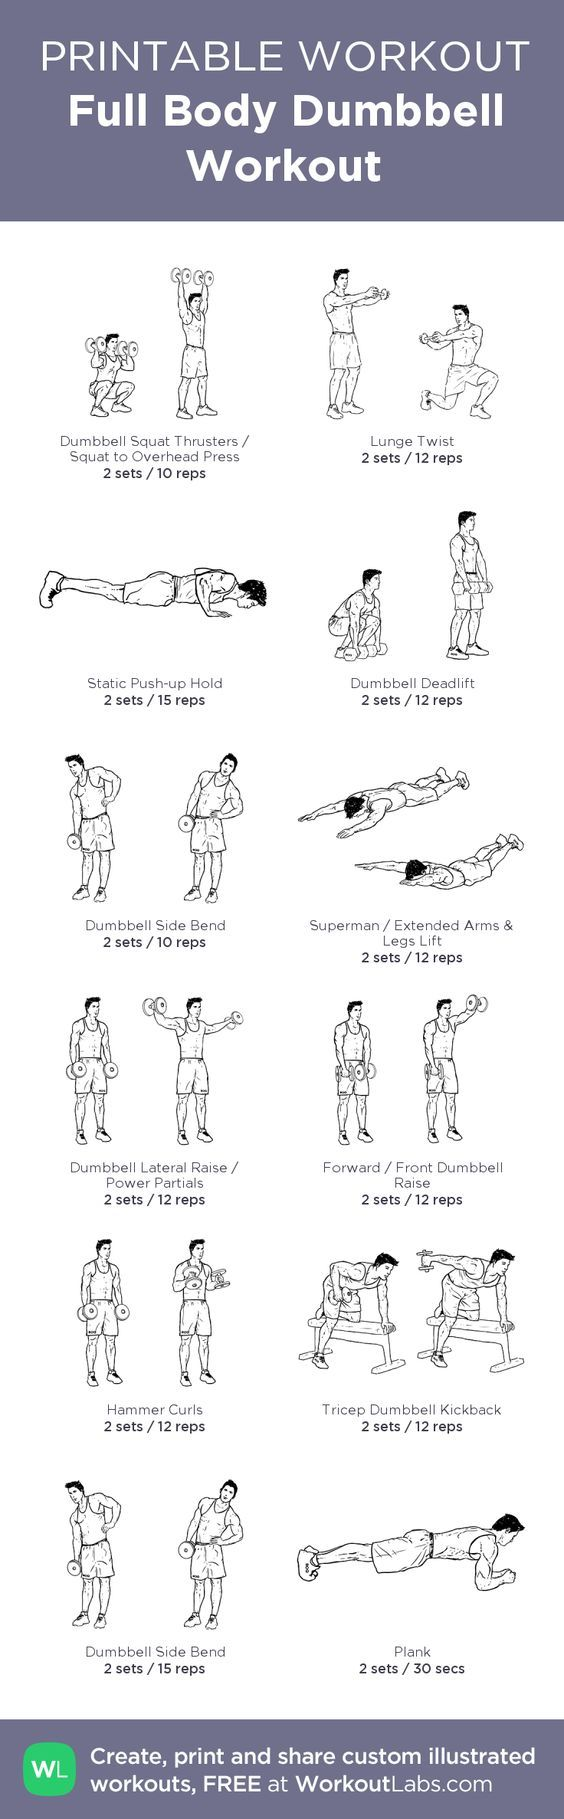 Full Body Dumbbell Workout: my visual workout created at WorkoutLabs.com • Click through to customize and download as a FREE PDF! #customworkout: